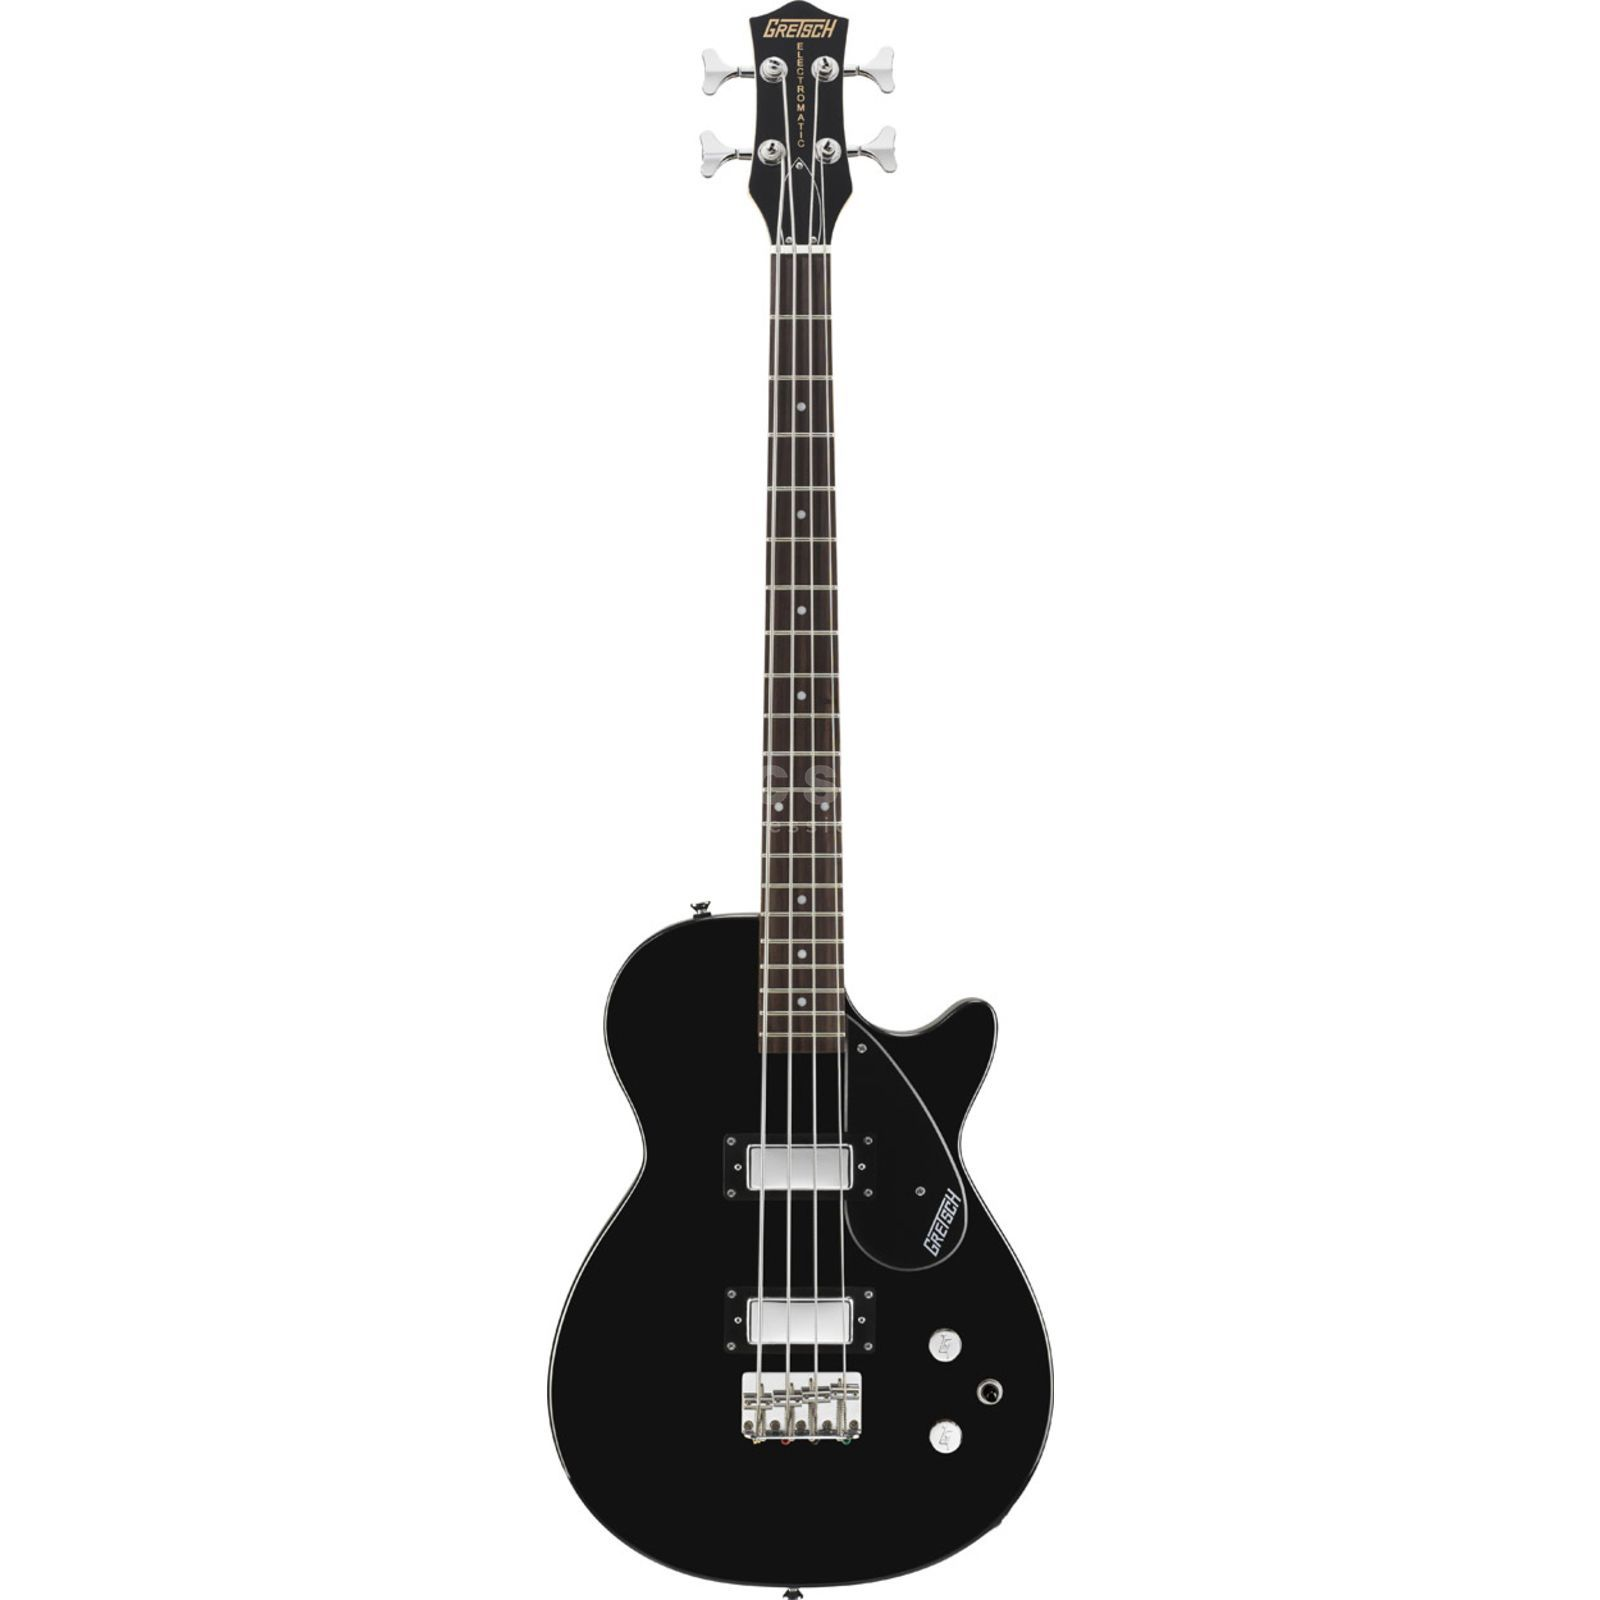 Gretsch G2220 Junior Jet II Bass Guita r, Black   Product Image